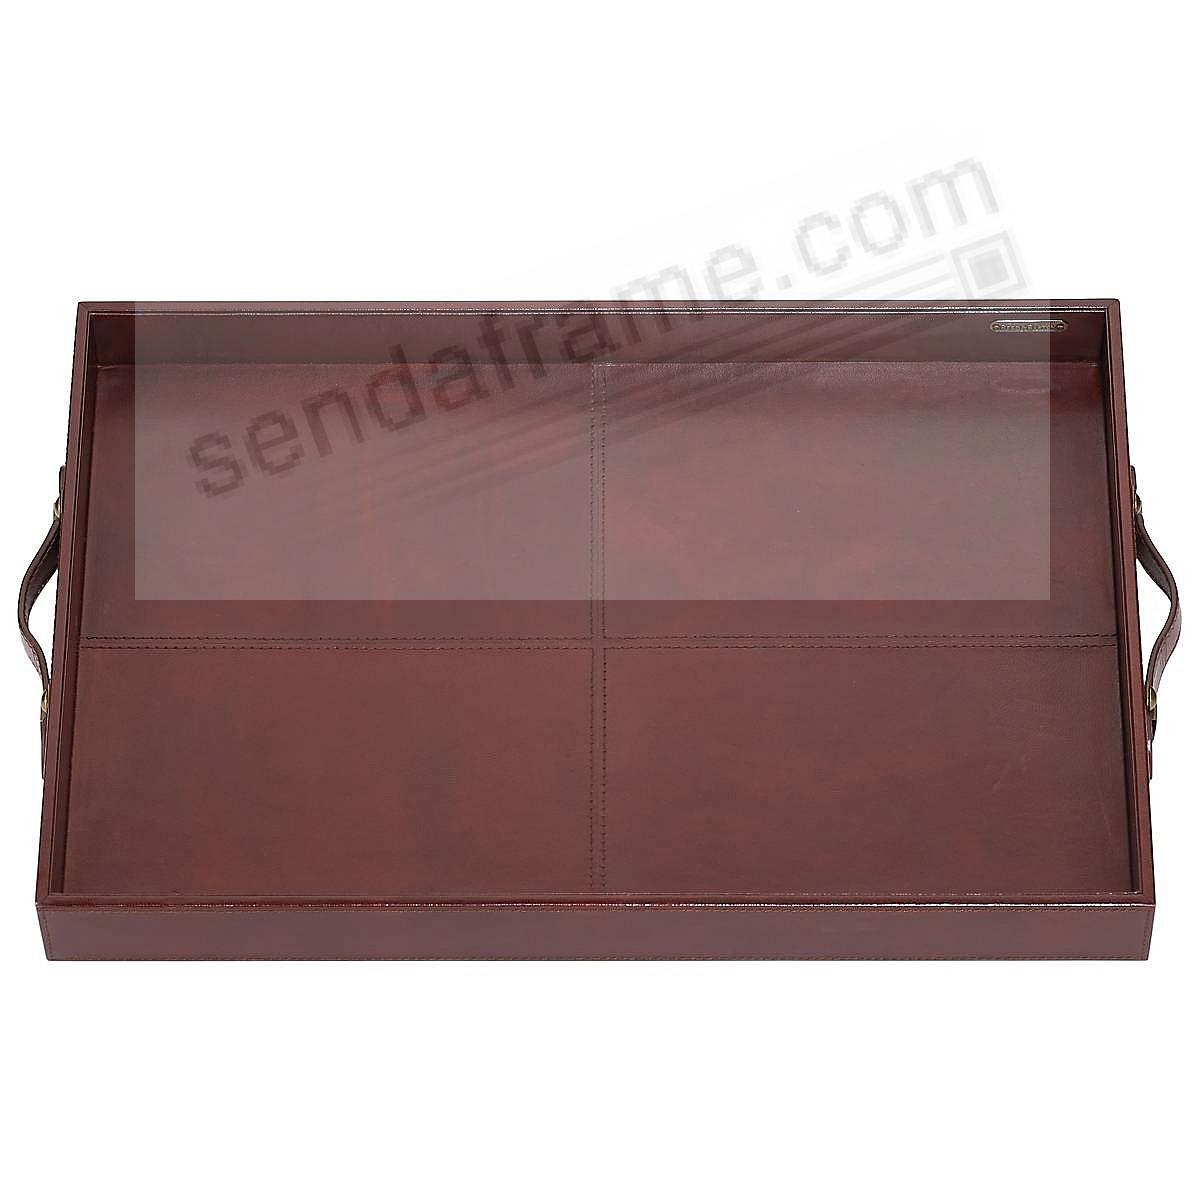 Sumptuous Dark Brown Leather HUDSON BAR/SERVING TRAY by Reed & Barton®